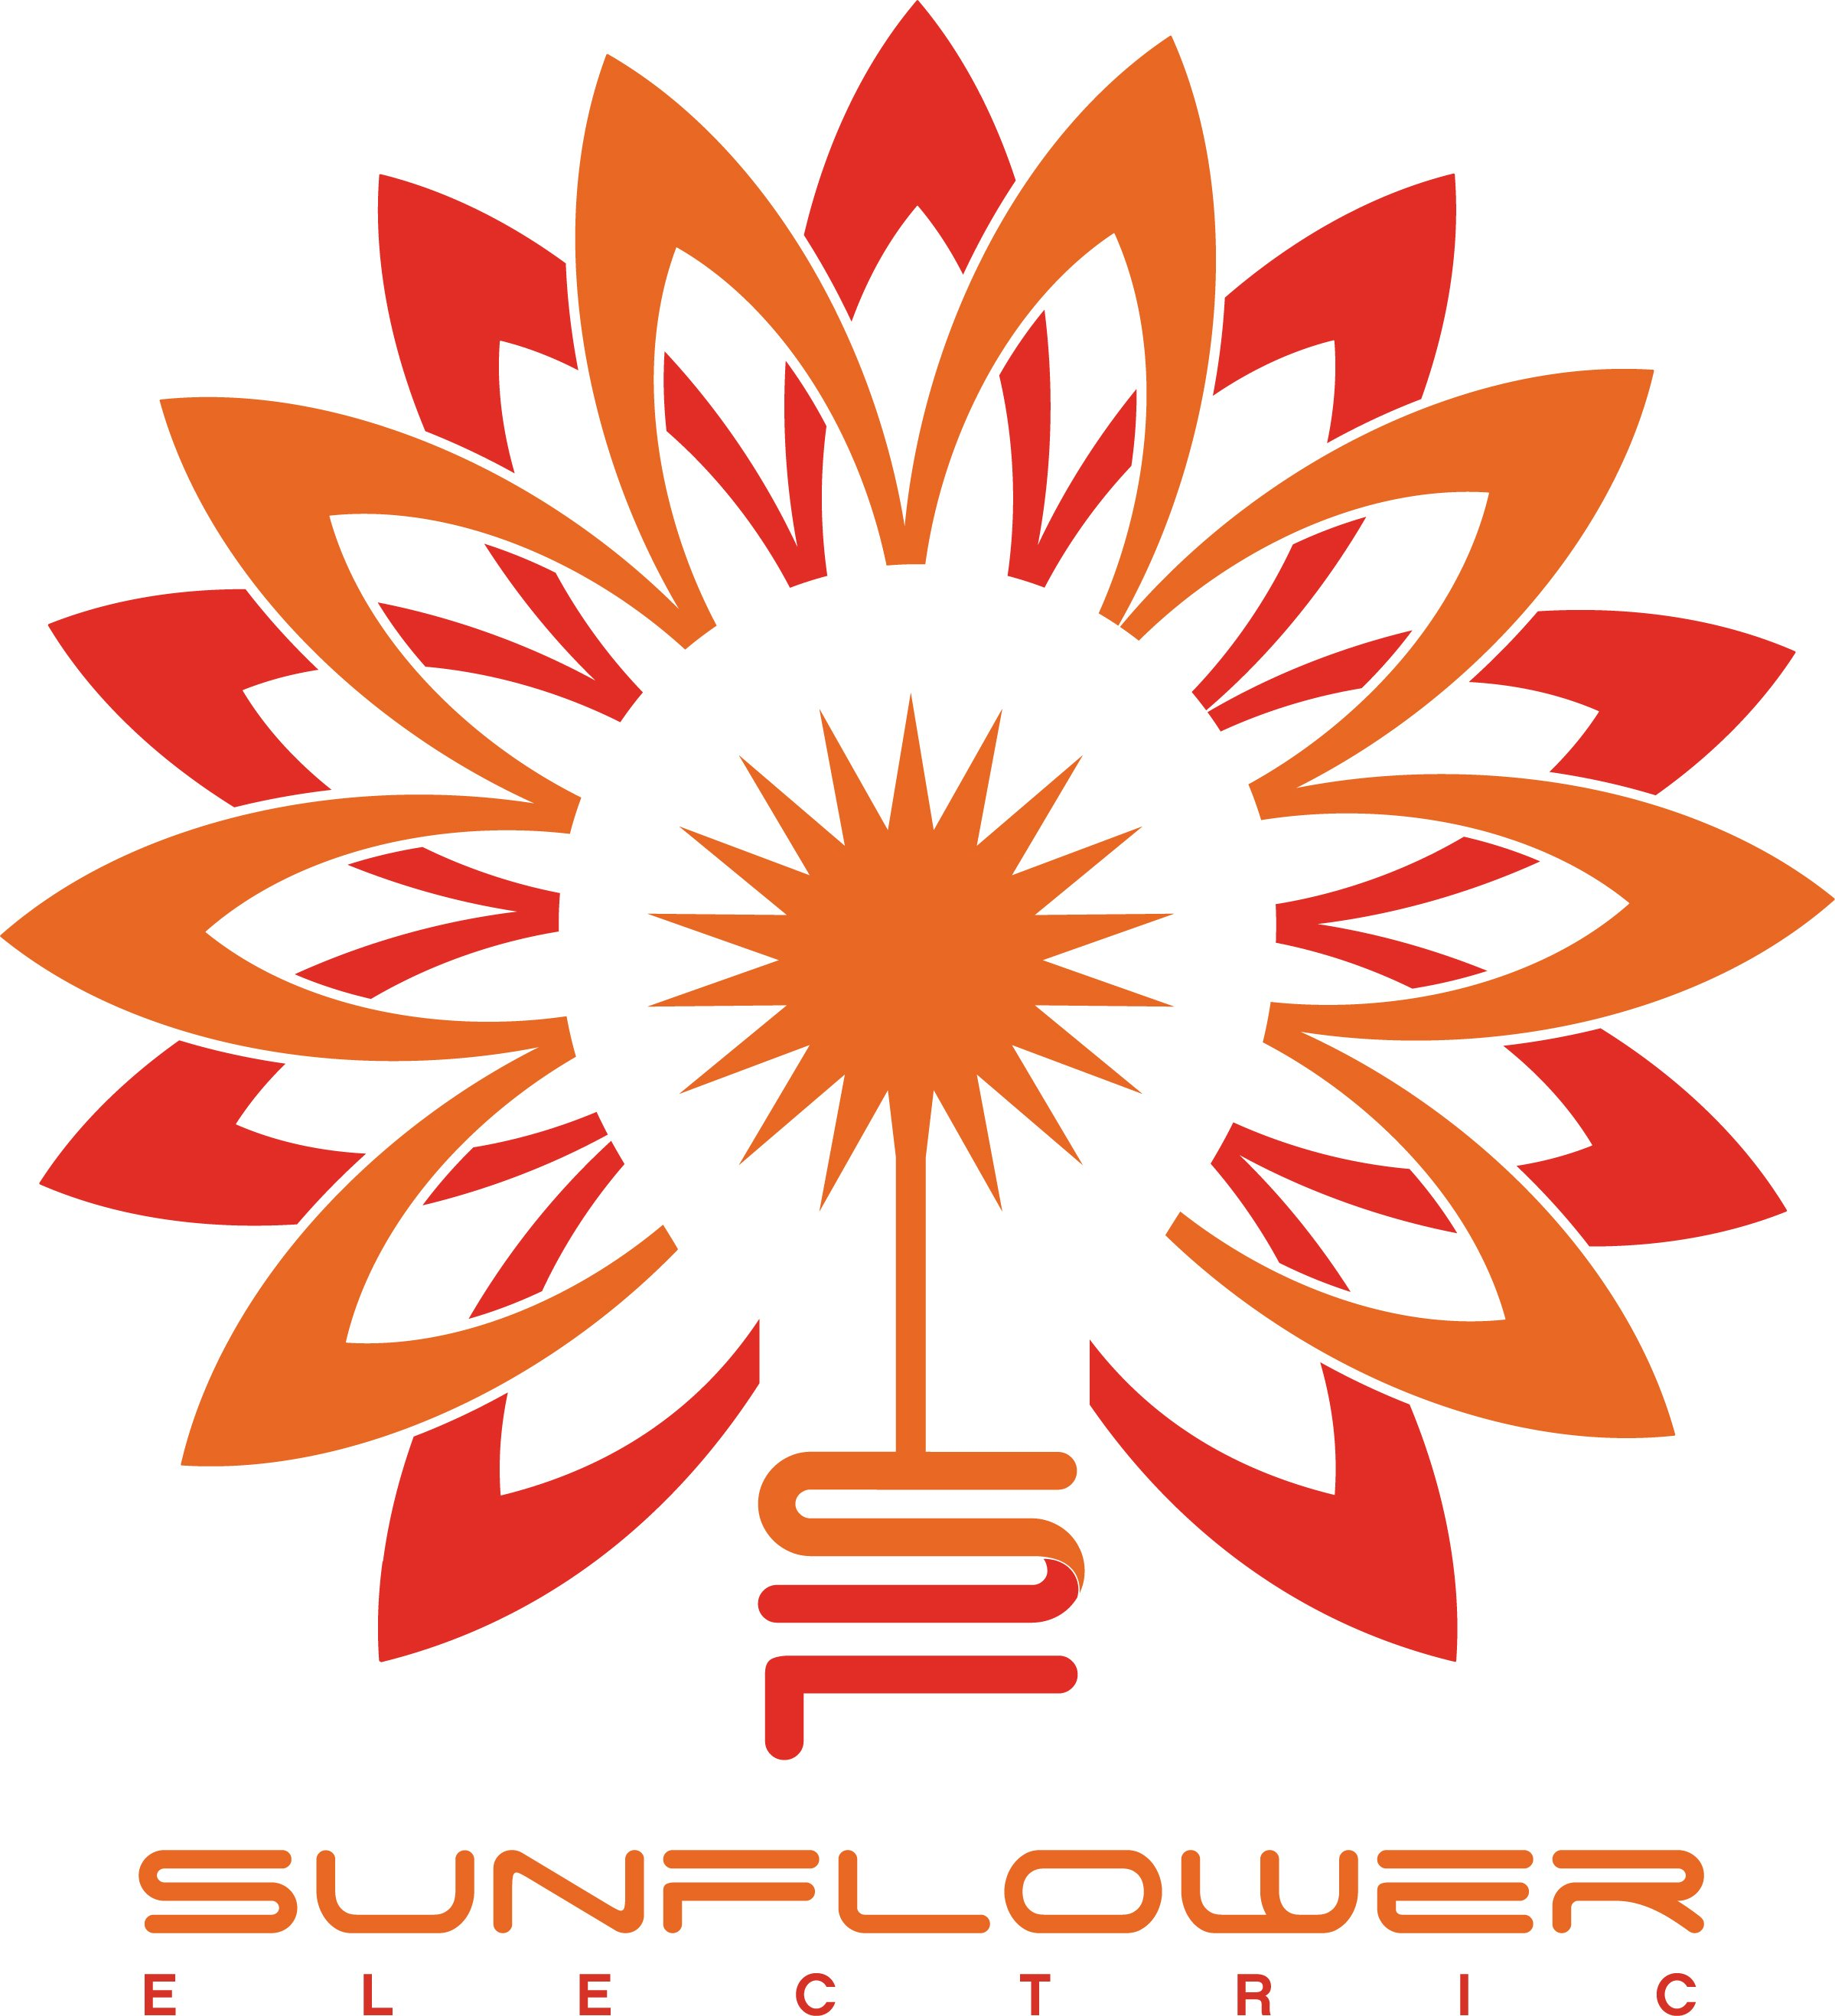 SUNFLOWER ELECTRIC